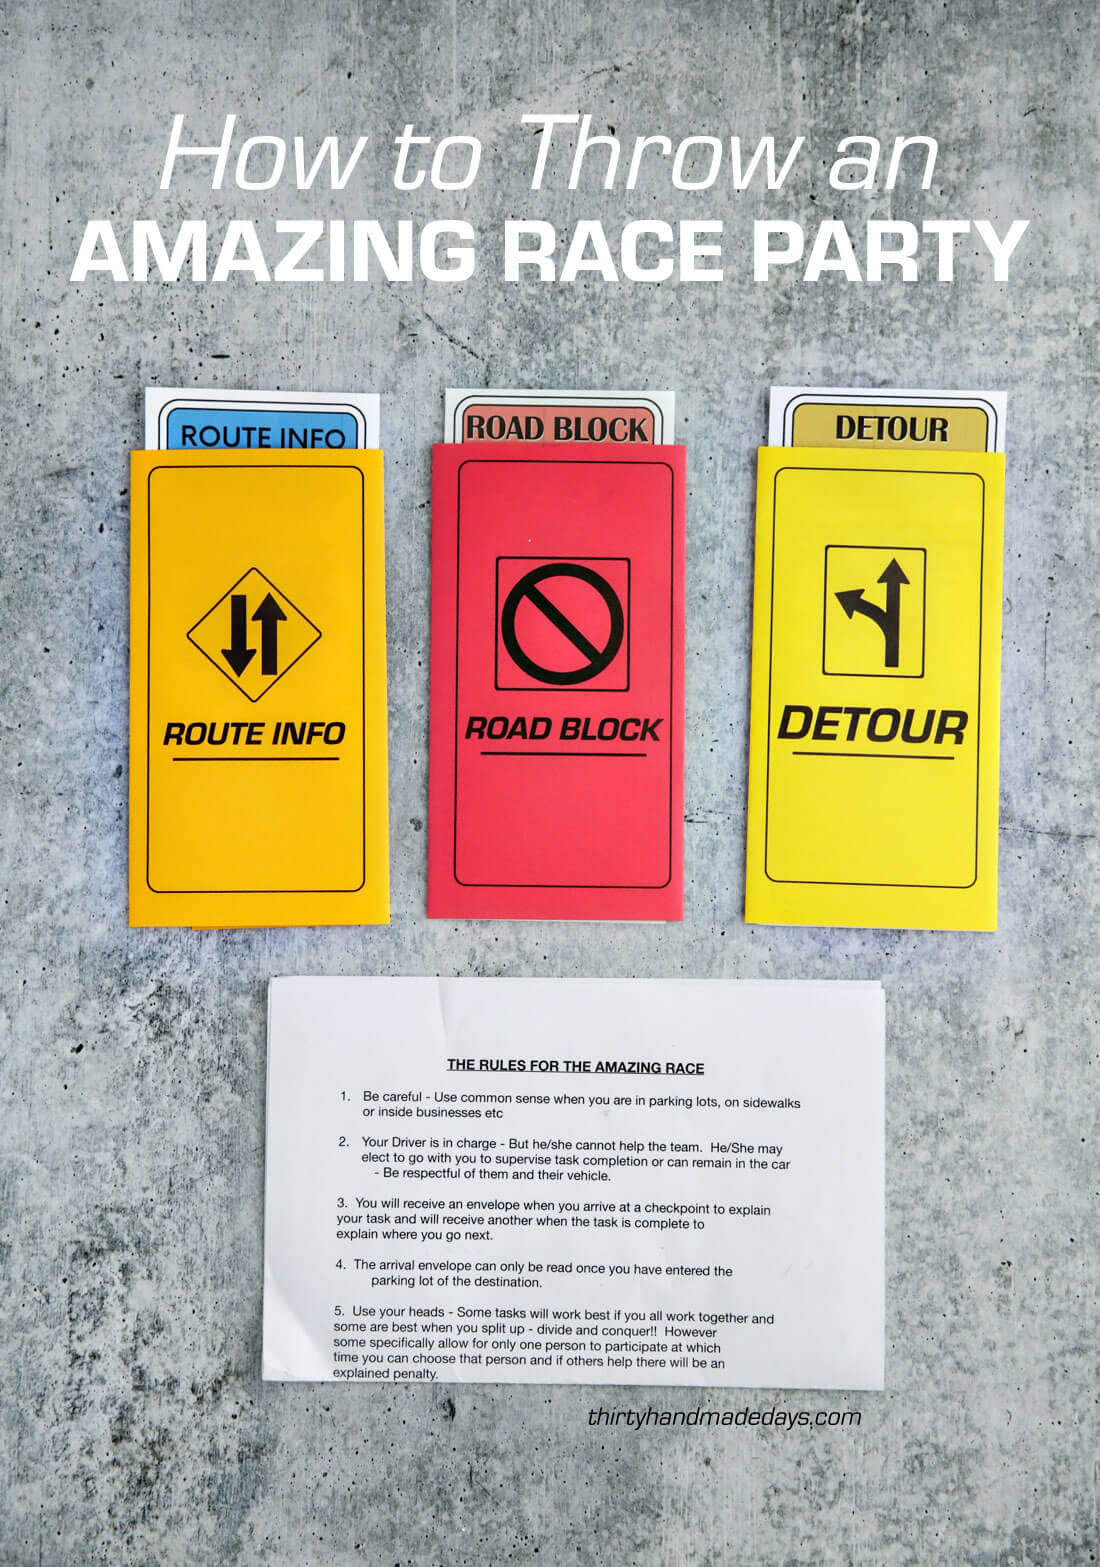 The Amazing Race Birthday Party Ideas For Teens From 30daysblog